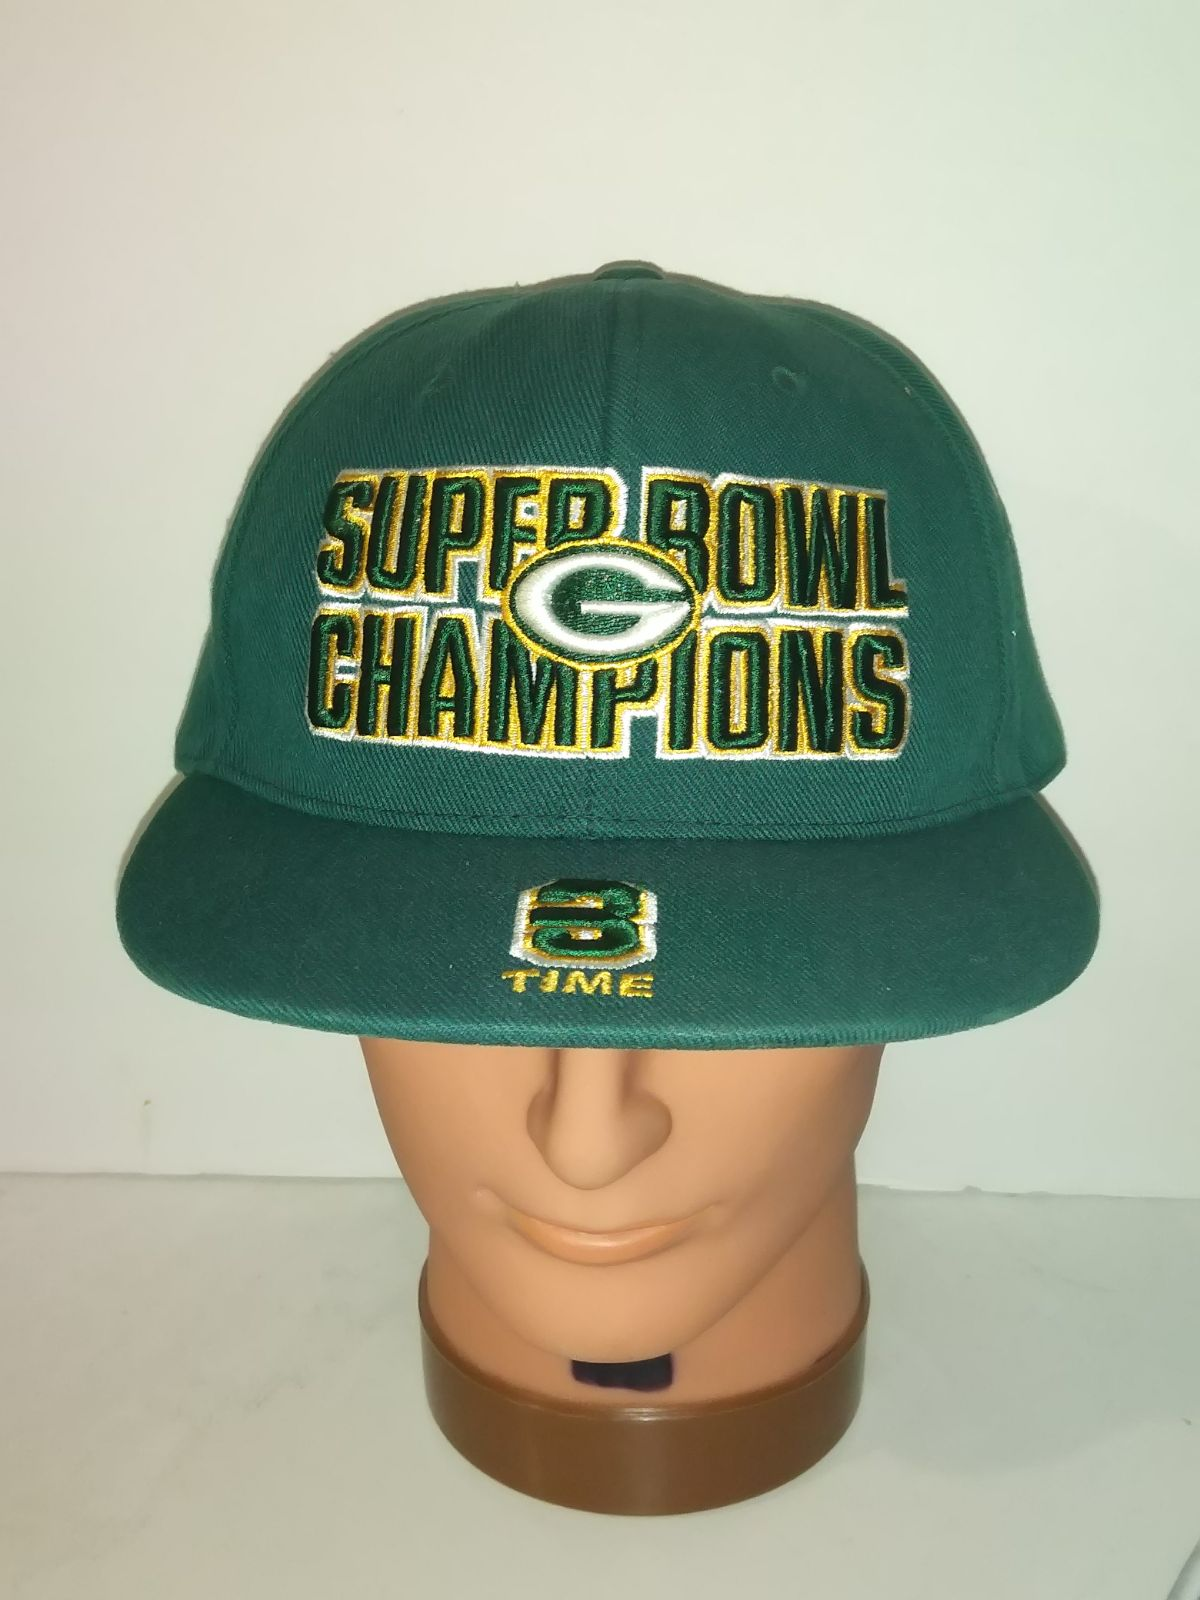 NFL Superbowl Champions Fitted Cap